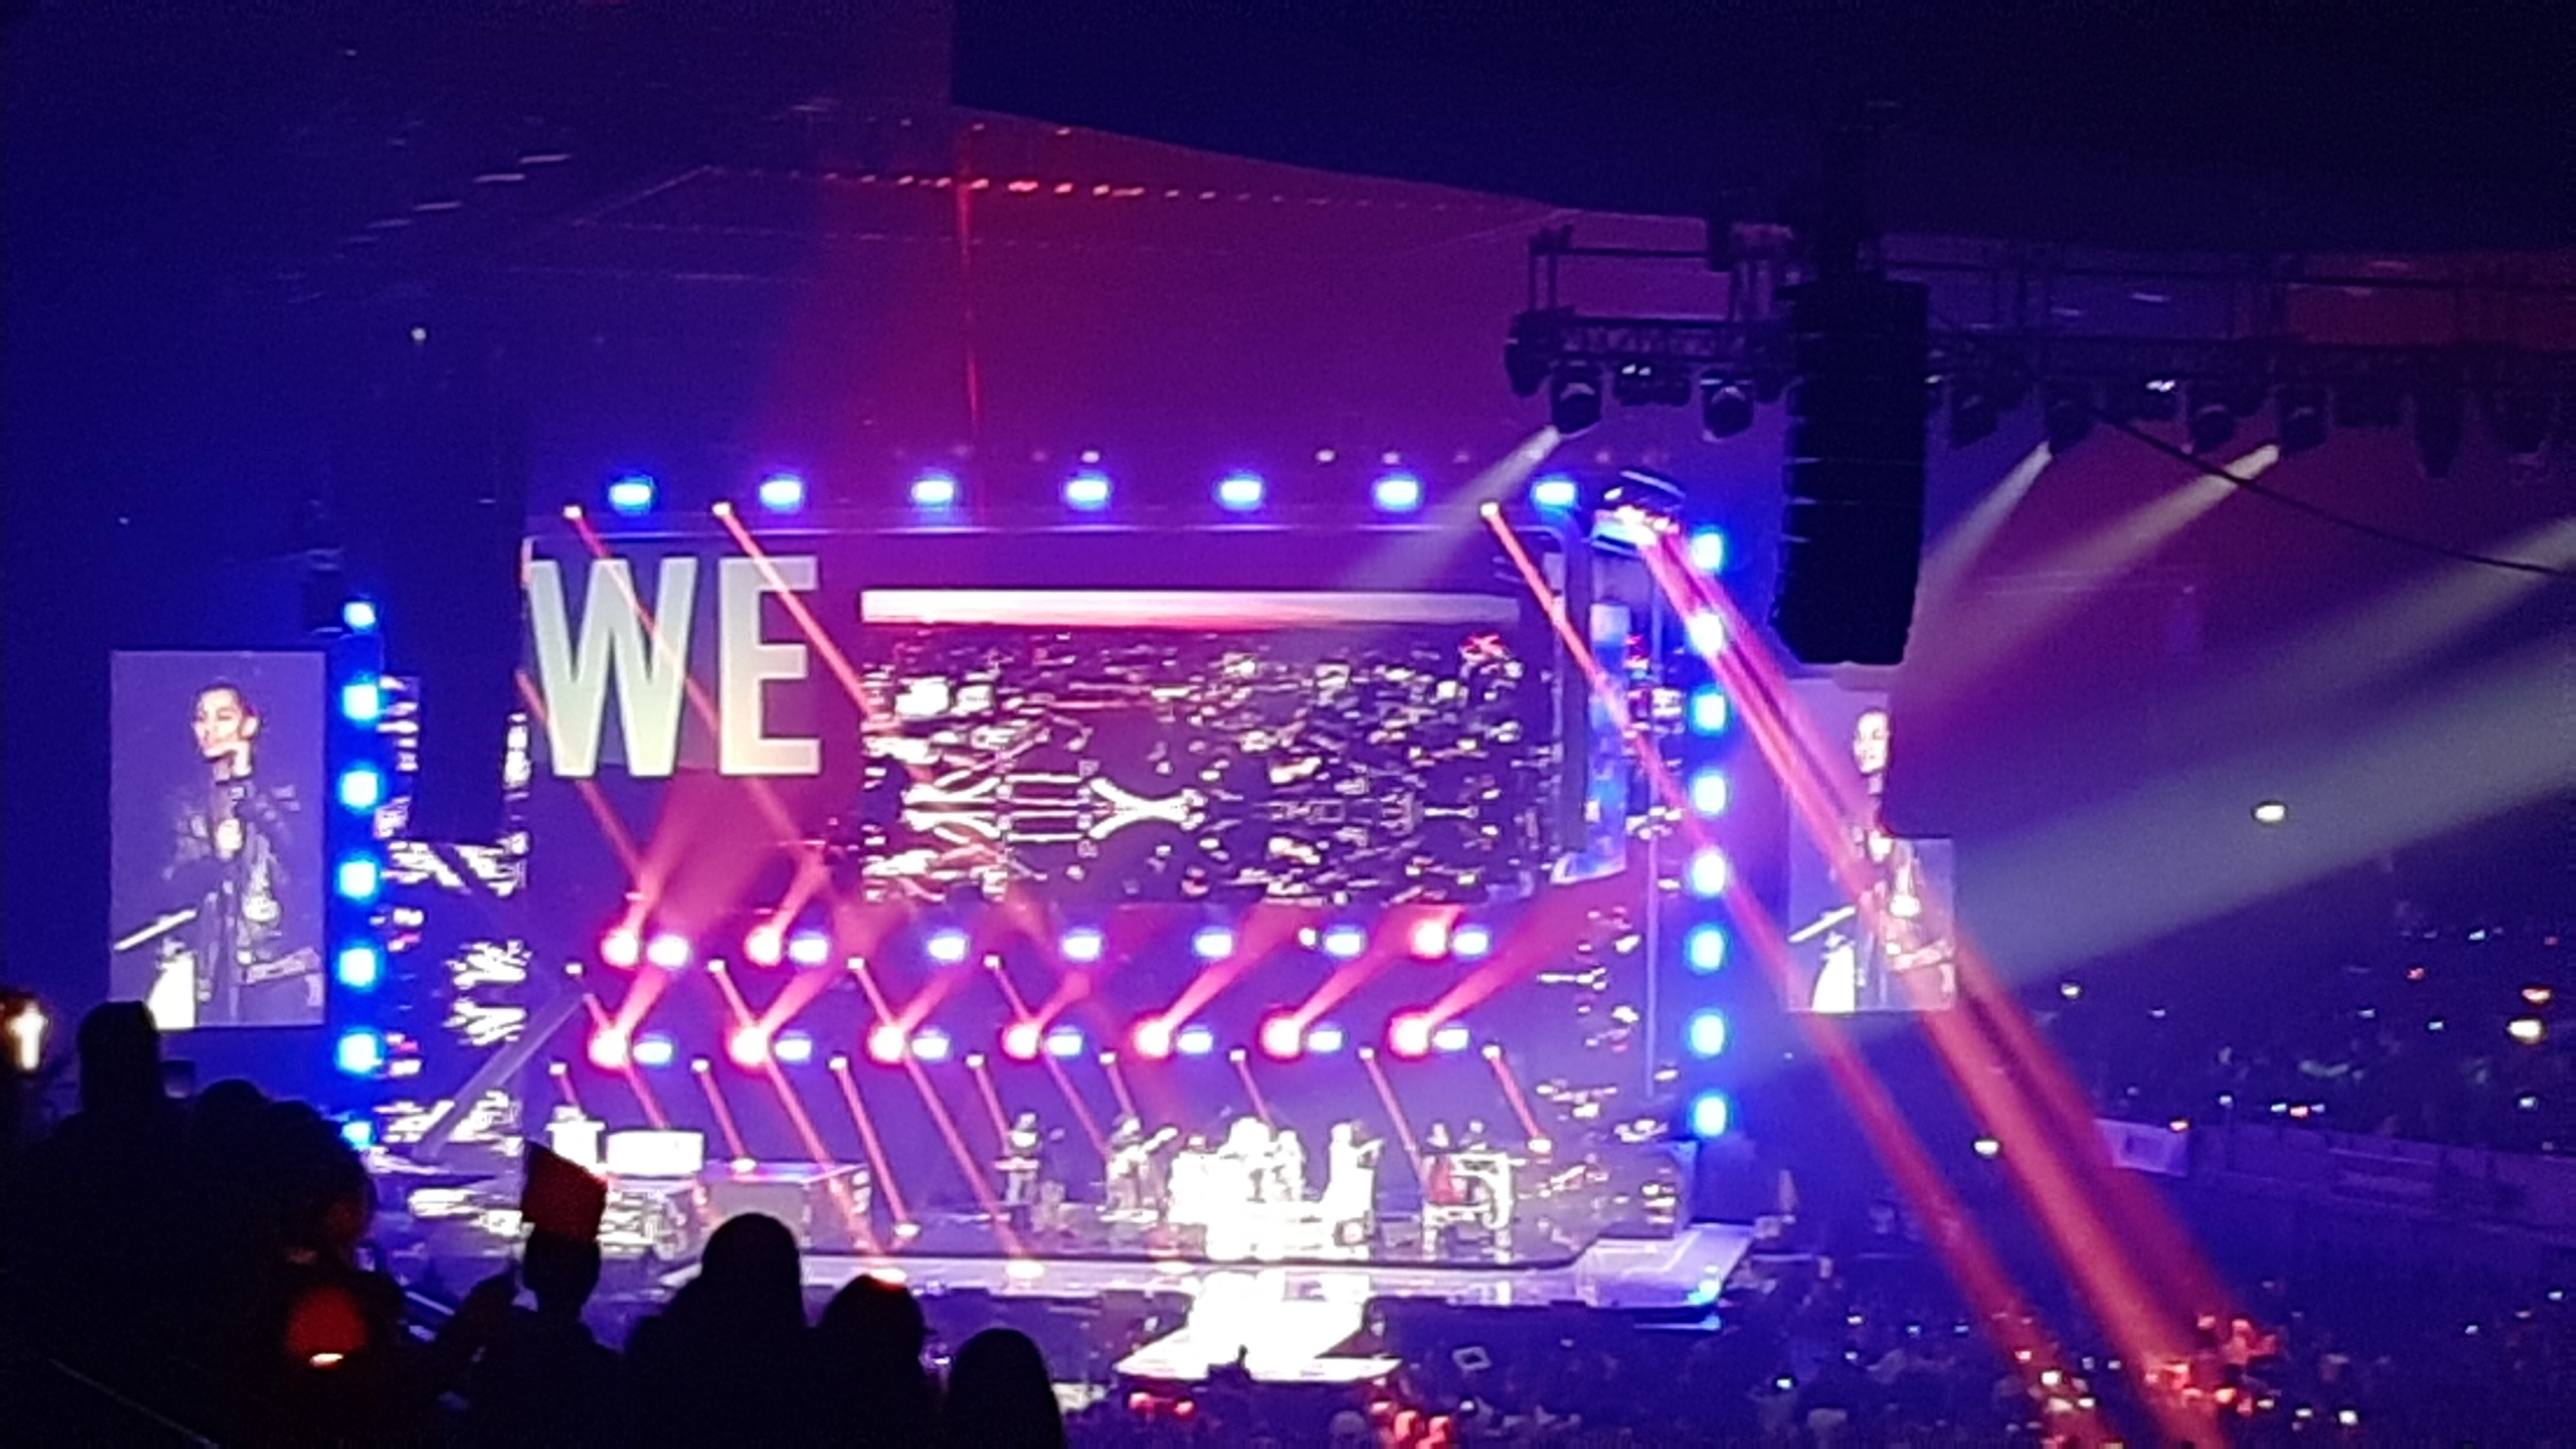 Year 6 Children go to WE Day event